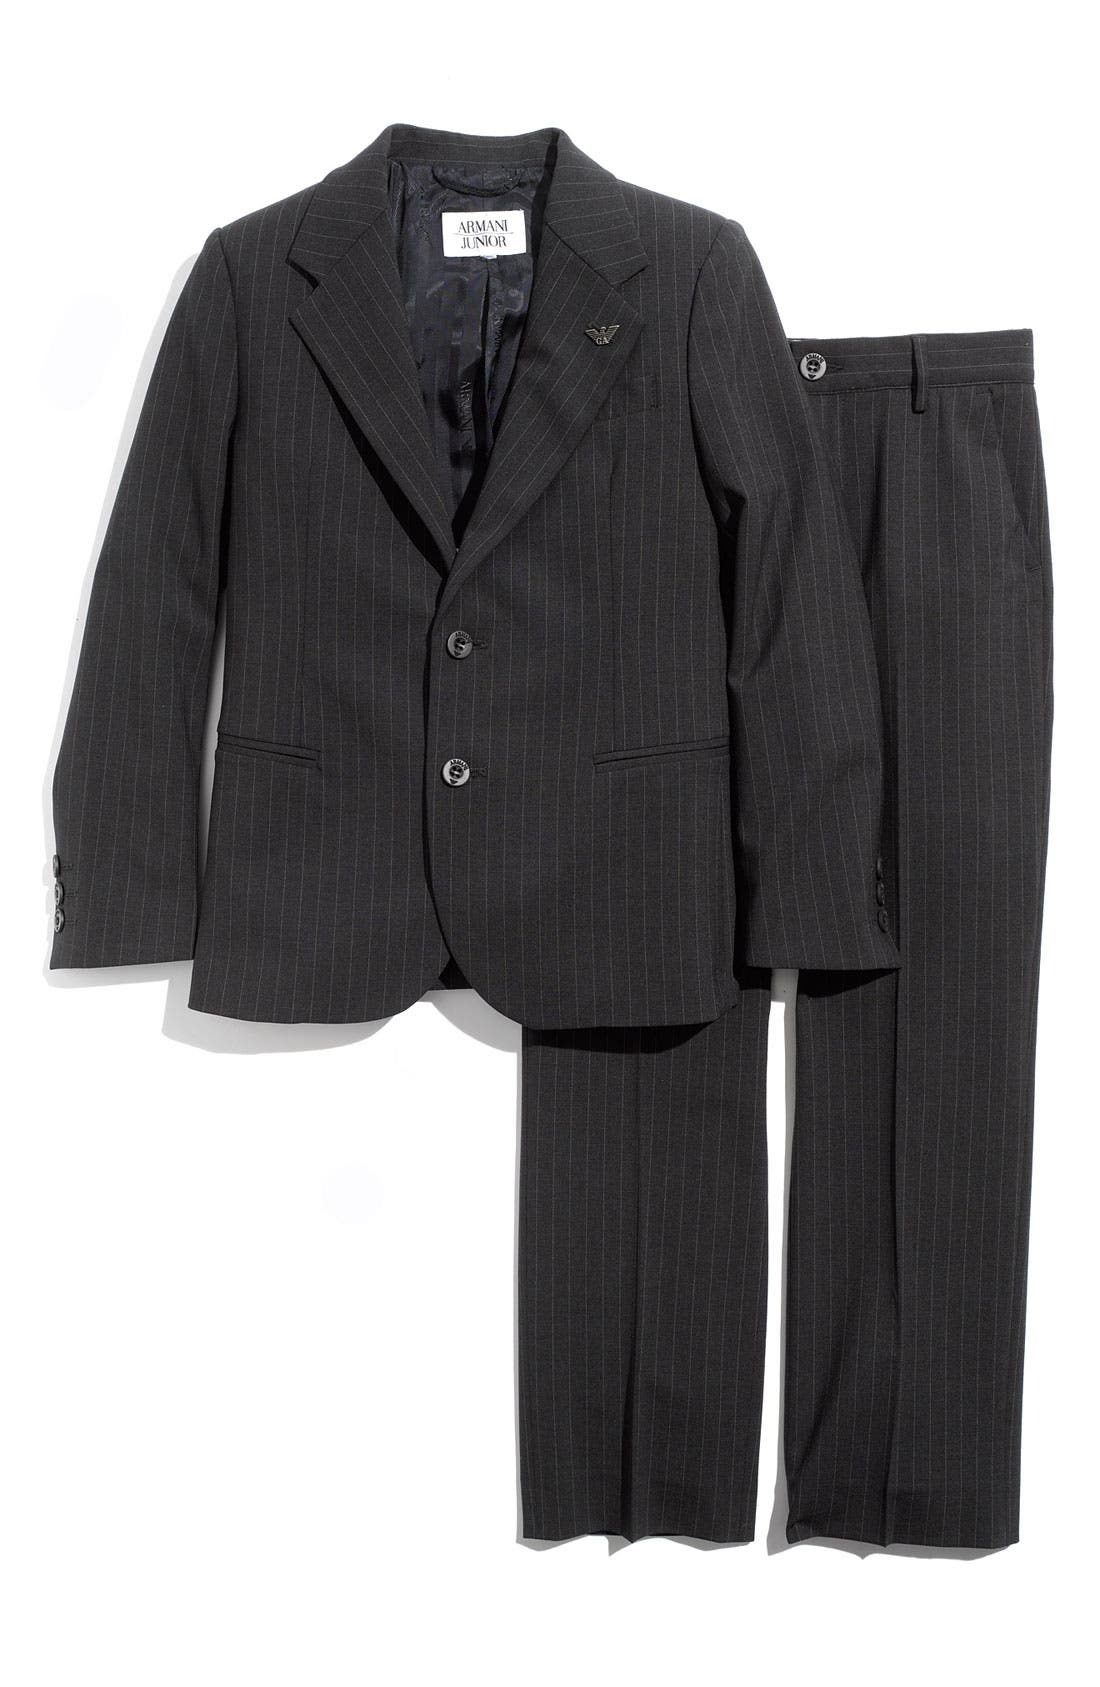 Main Image - Armani Junior Two Piece Suit (Big Boys)